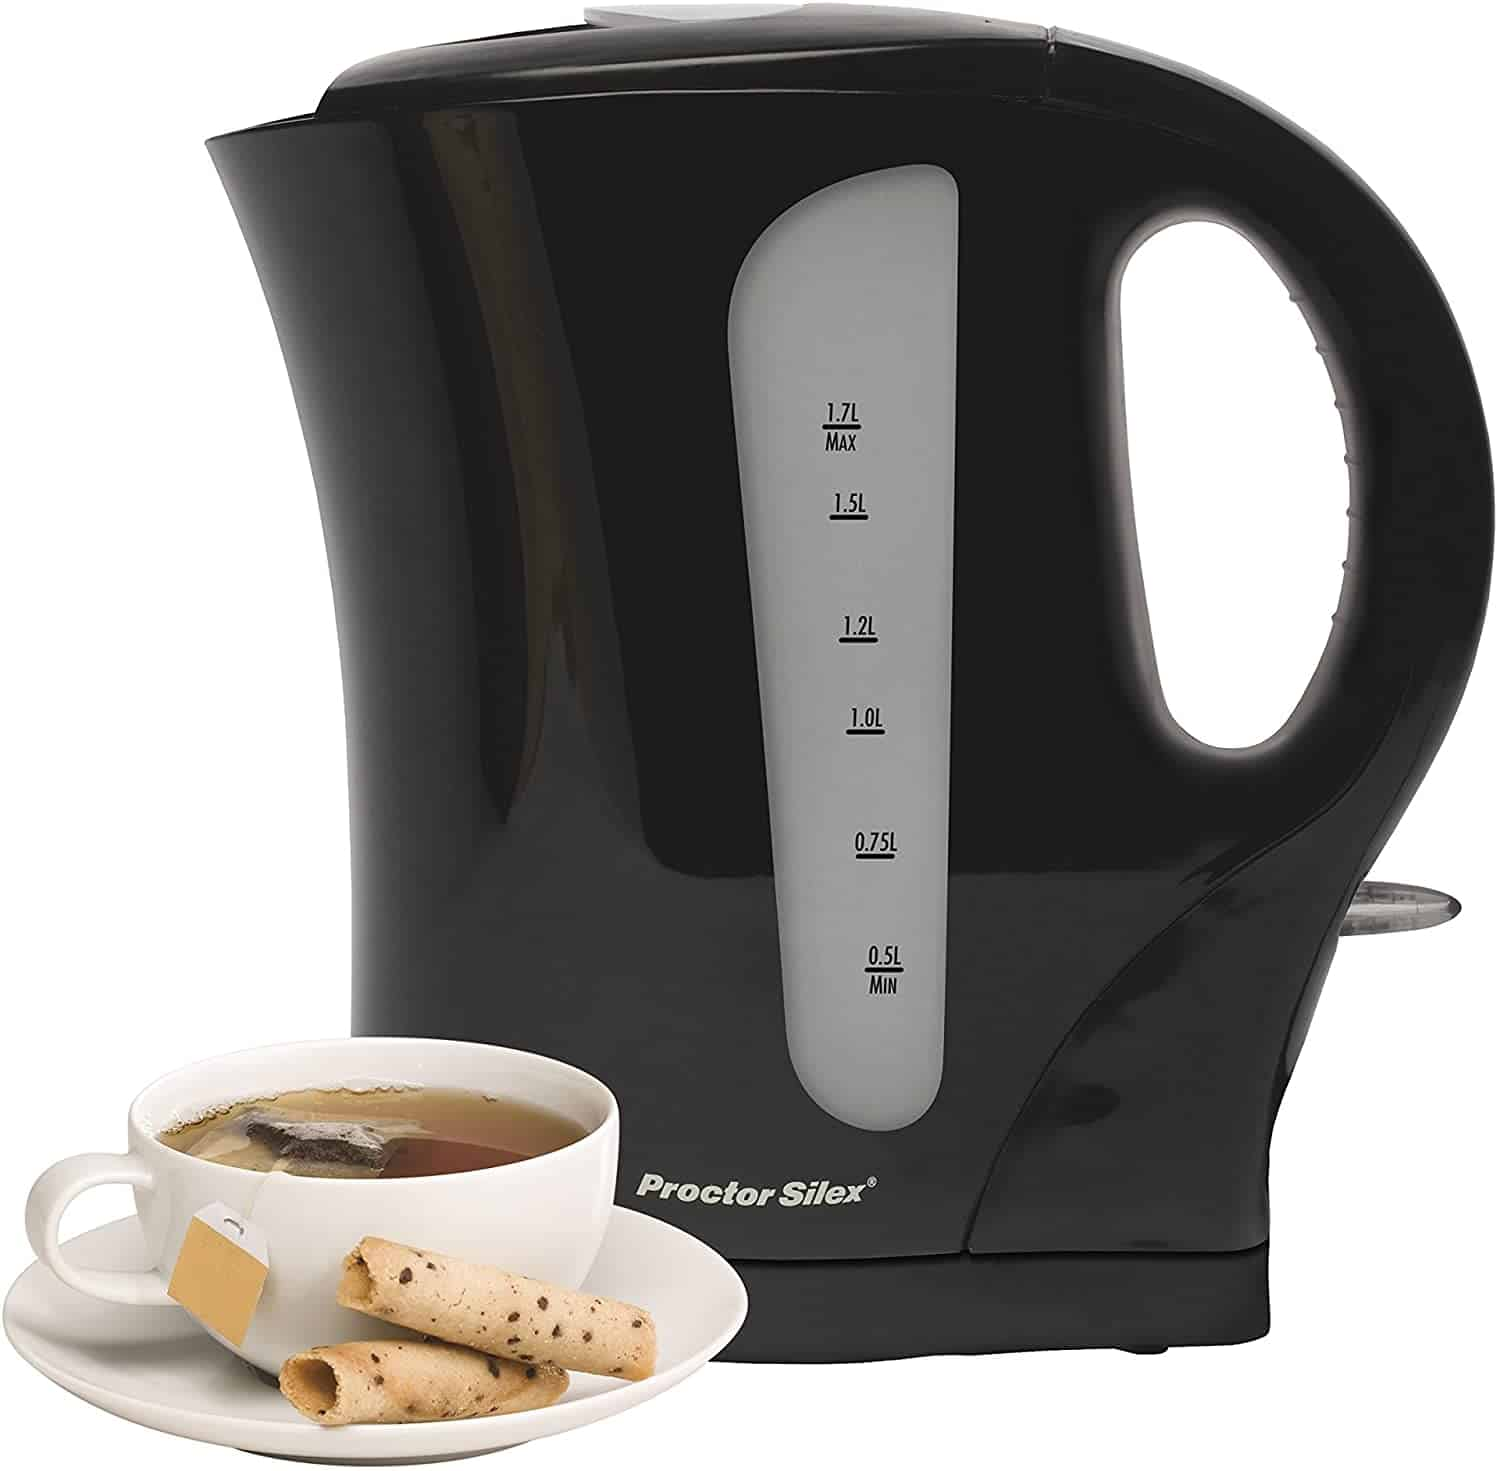 Proctor Silex Electric Tea Kettle 1.7 Liter